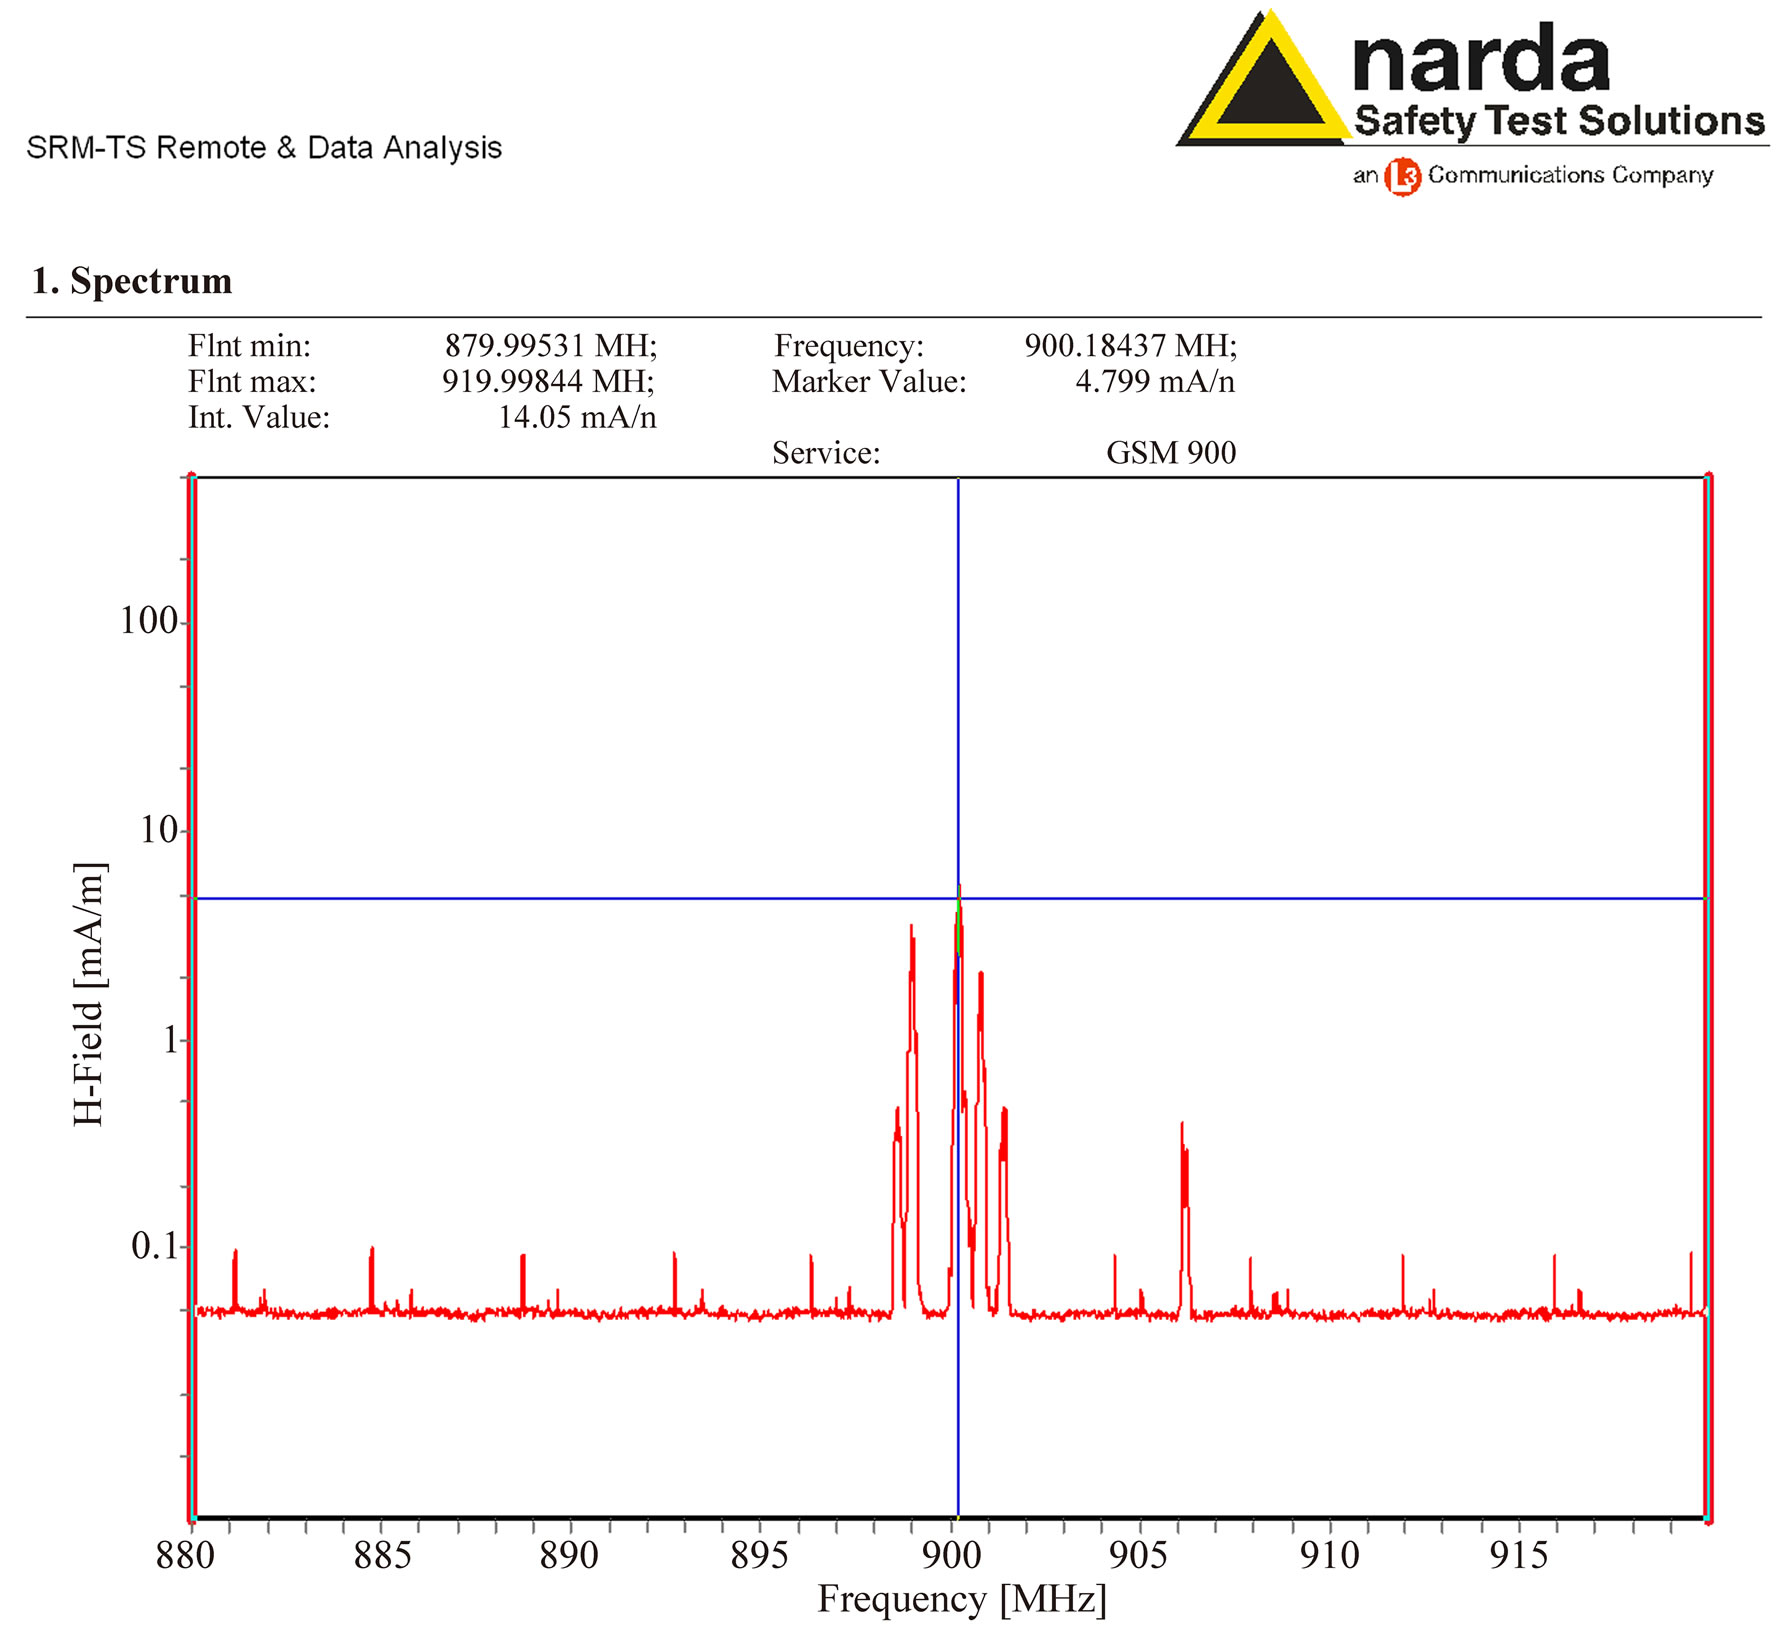 Inspections Of Mobile Phone Microwaves Effects On Proteins Secondary Circuit Diagram Nokia 1100 Spectrum Analysis The Magnetic Field Component Emitted From Around 900 Mhz Measured By A Narda Srm 3000